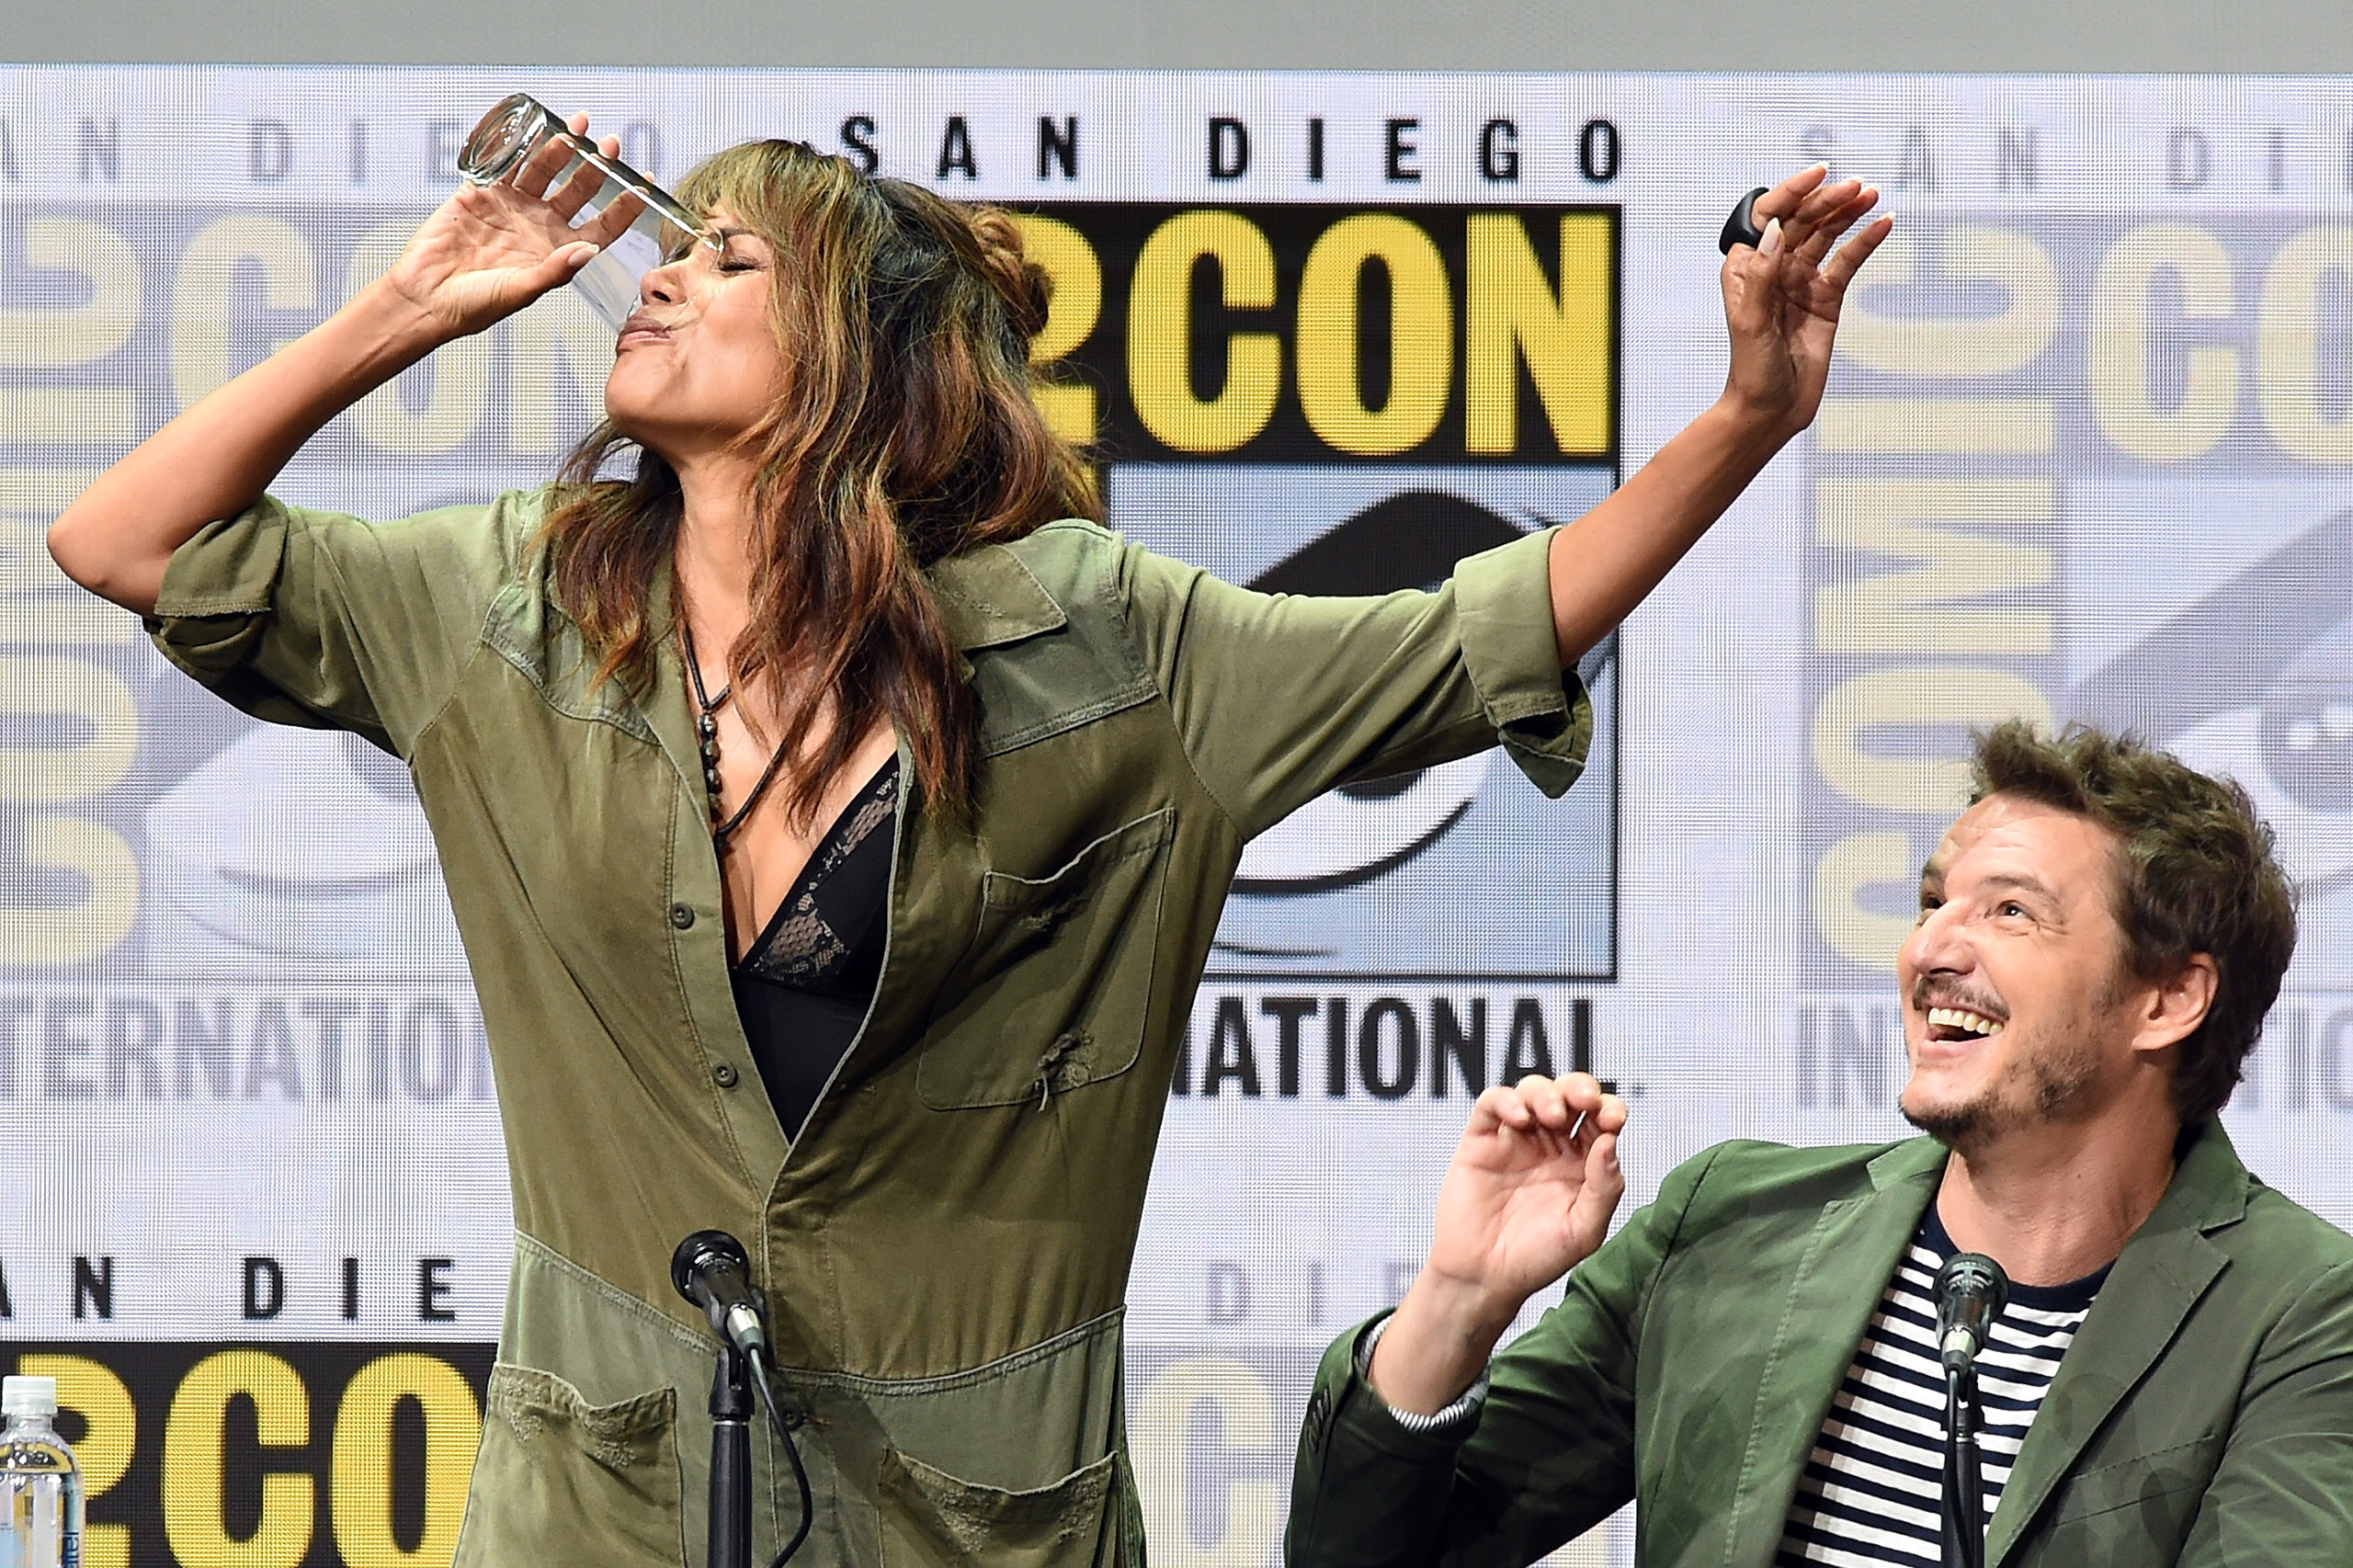 Actor Halle Berry takes a drink onstage while actor Pedro Pascal looks on at the 20th Century FOX panel during Comic-Con International 2017 at San Diego Convention Center on July 20, 2017.